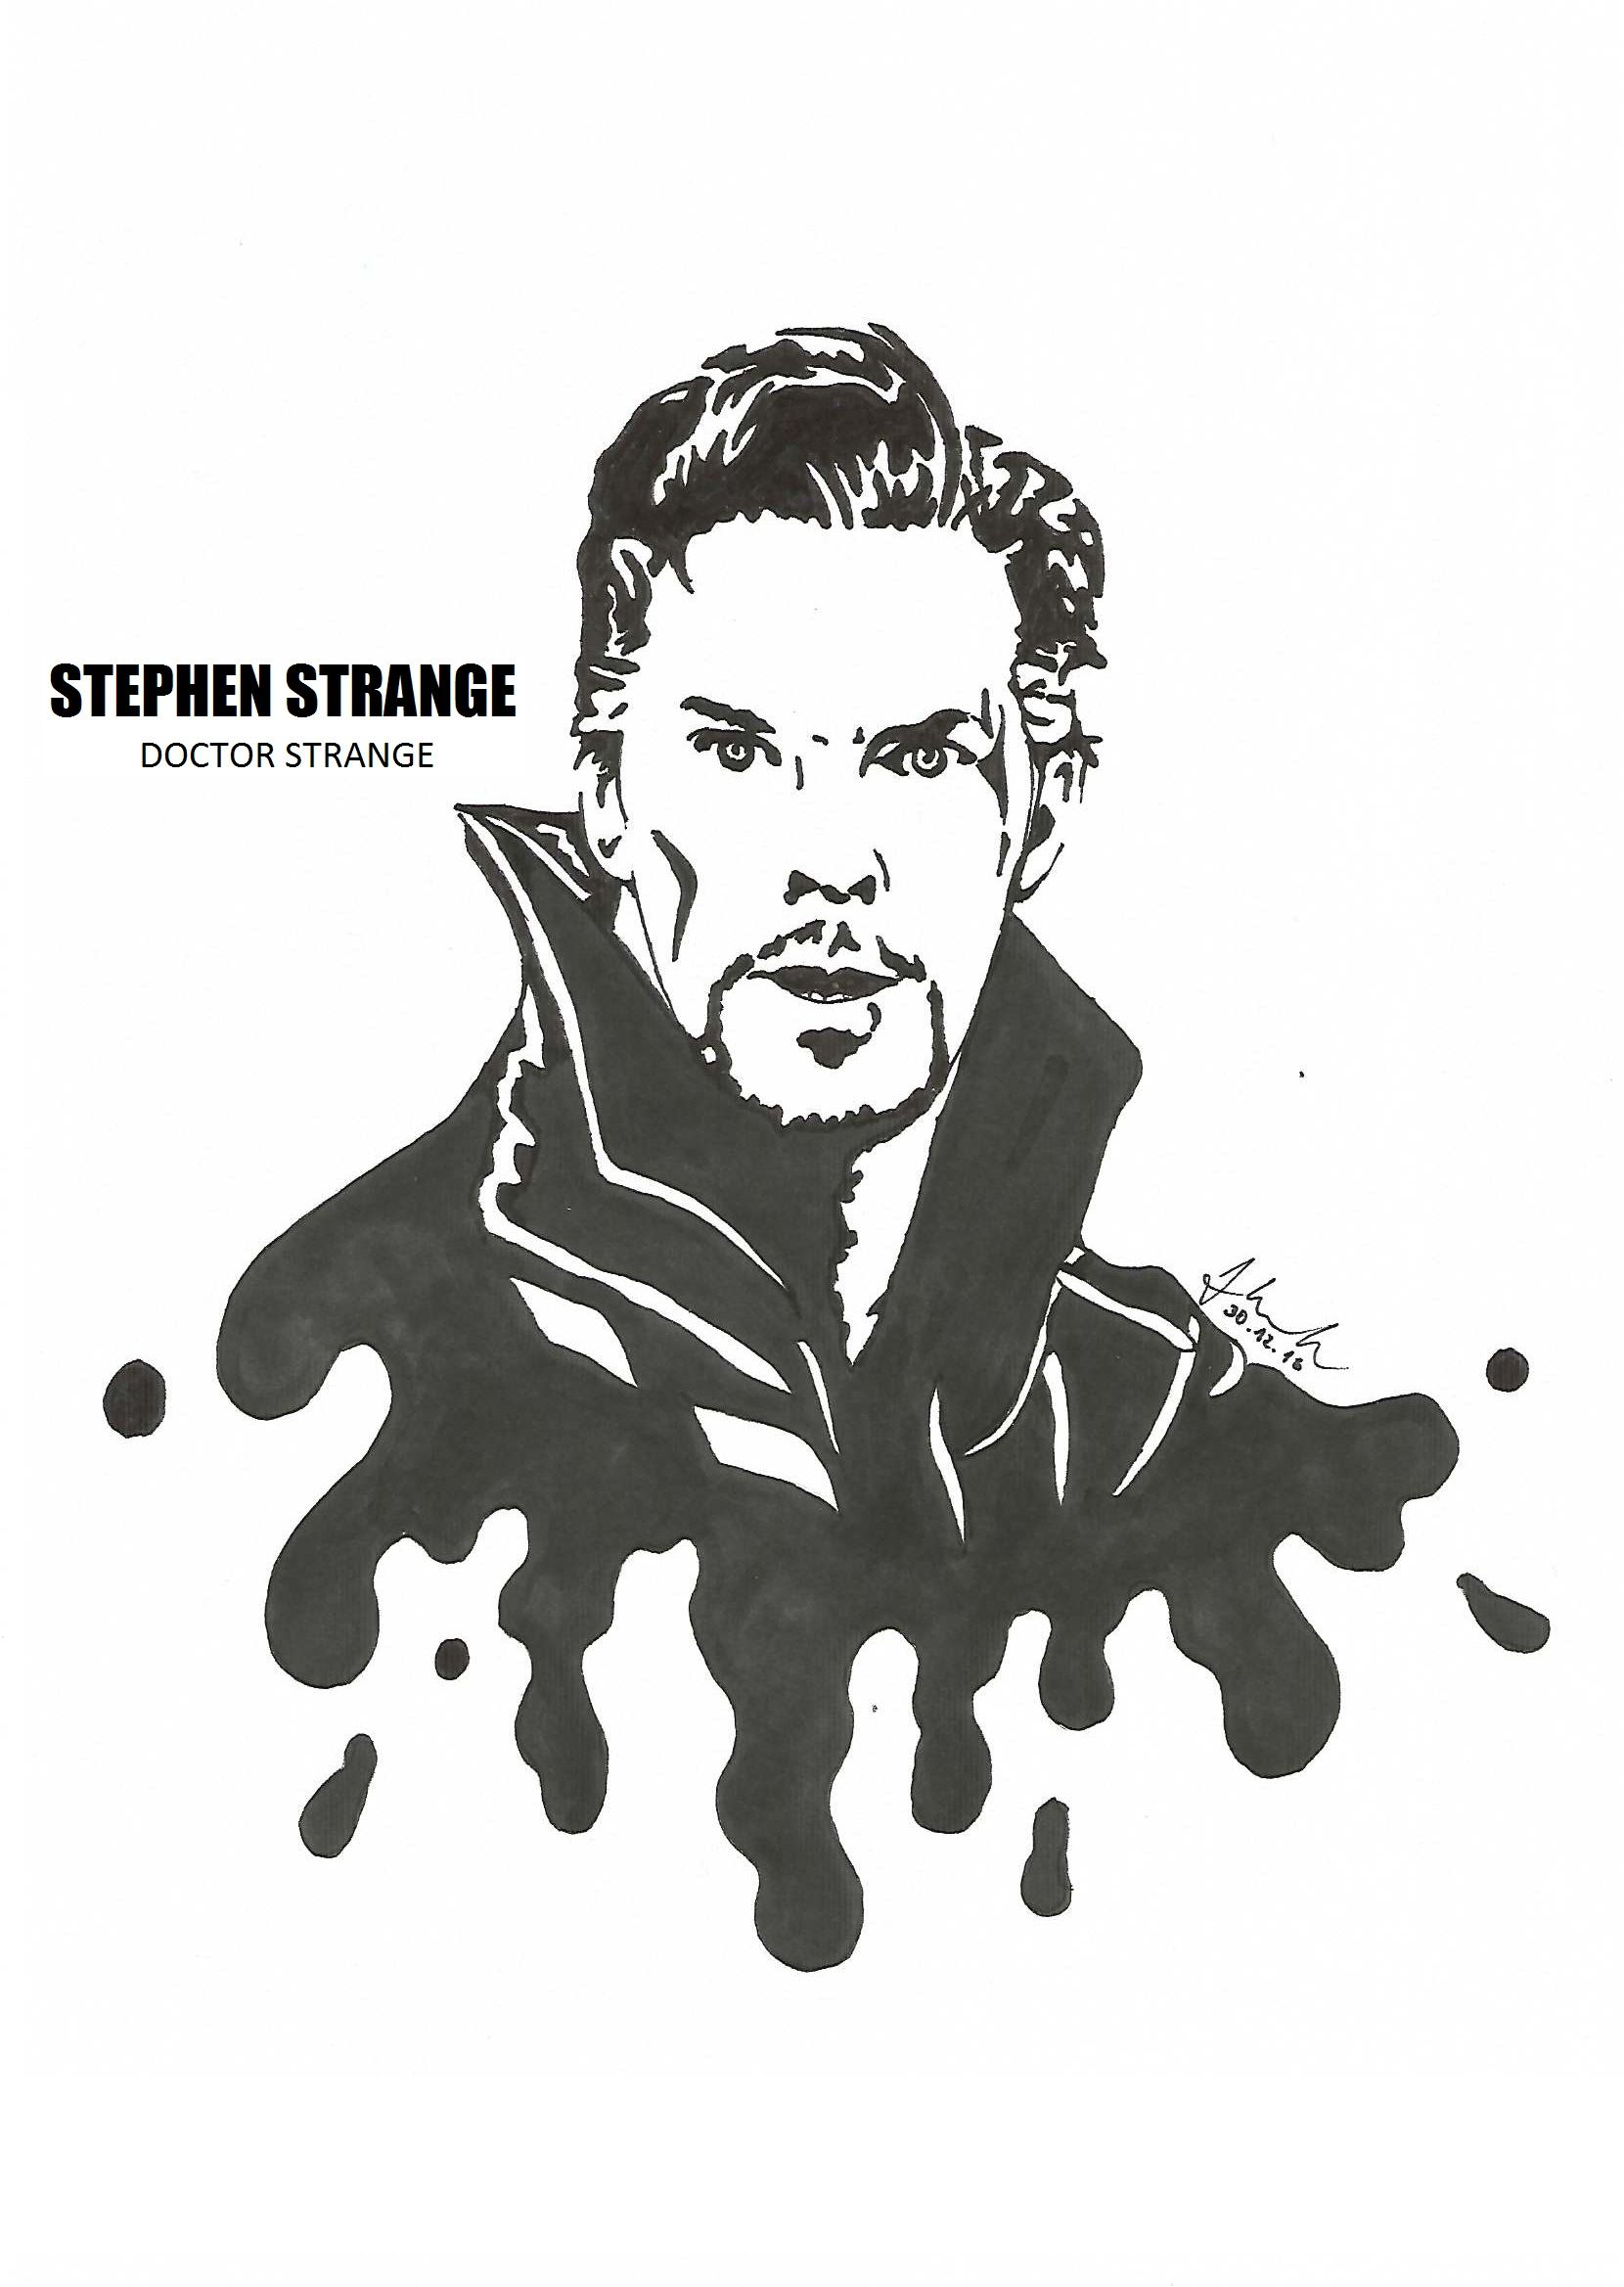 Stephen Strange Doctor Strange Benedict Cumberbatch Drawing Blackandwhite Marvel